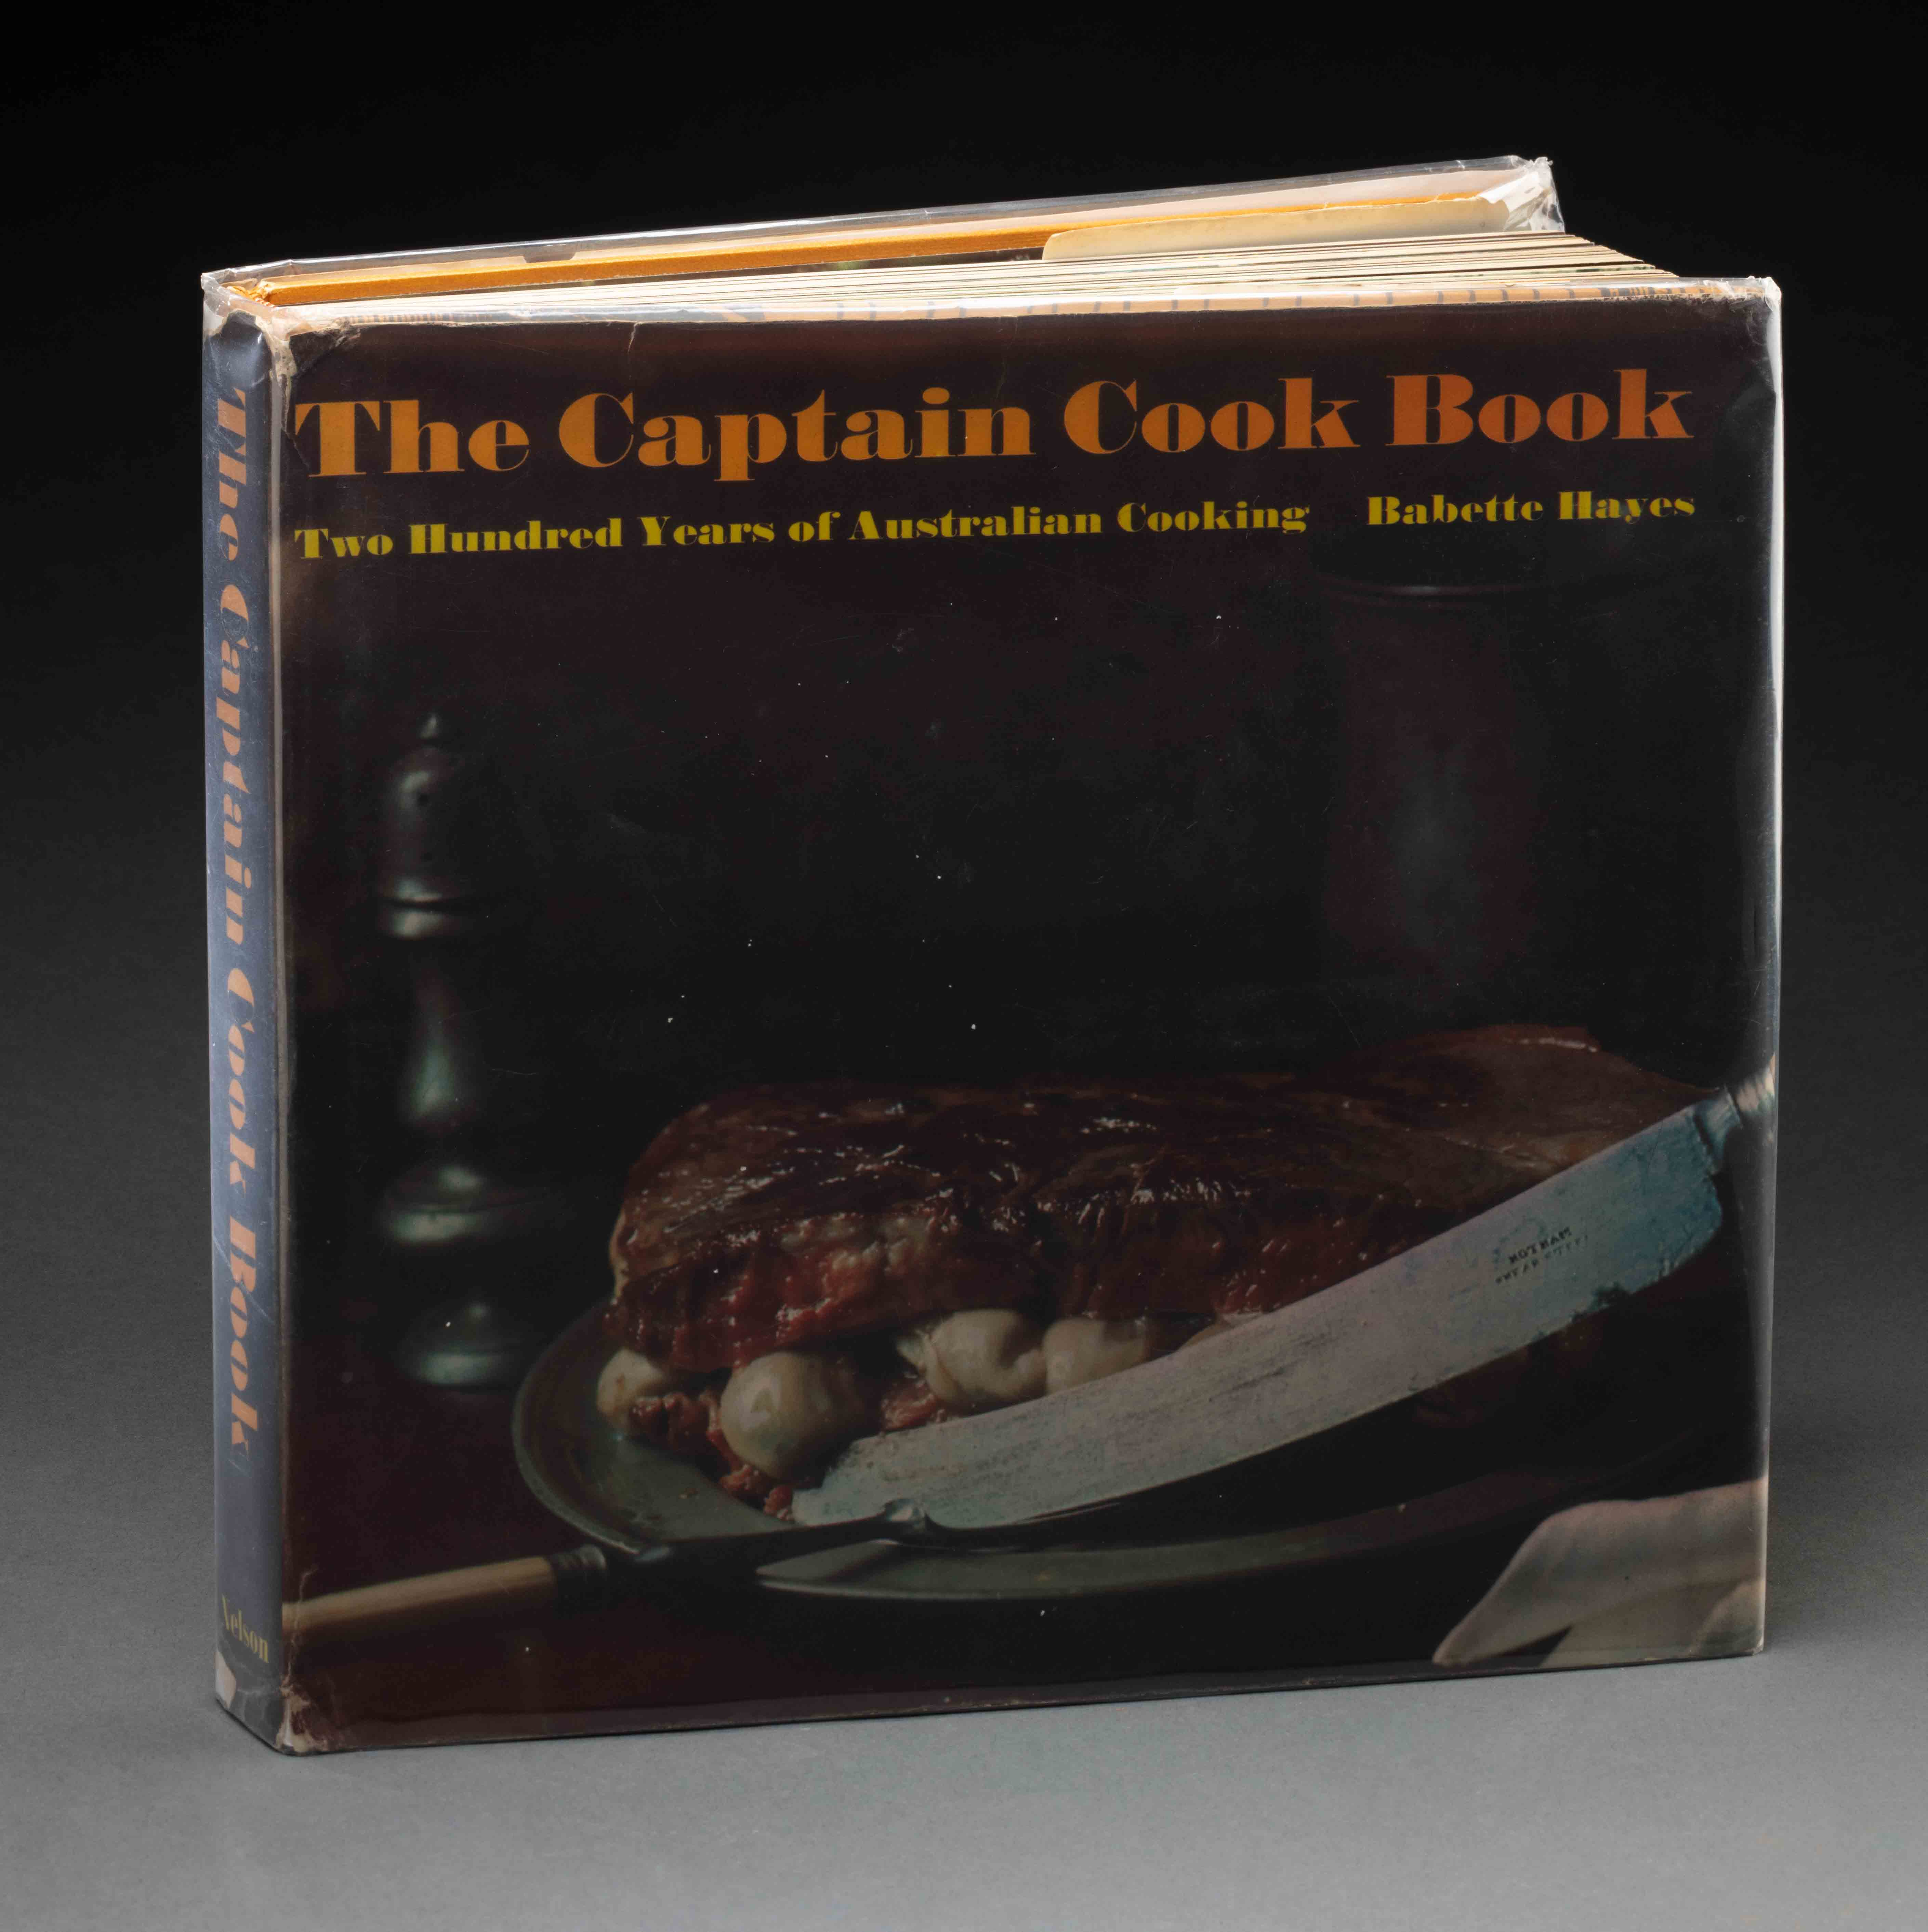 200 Years of Australian Cooking: The Captain Cook Book 1970 featuring an image of a large knife and oysters sandwiched between two thick slices of meat on the cover. - click to view larger image